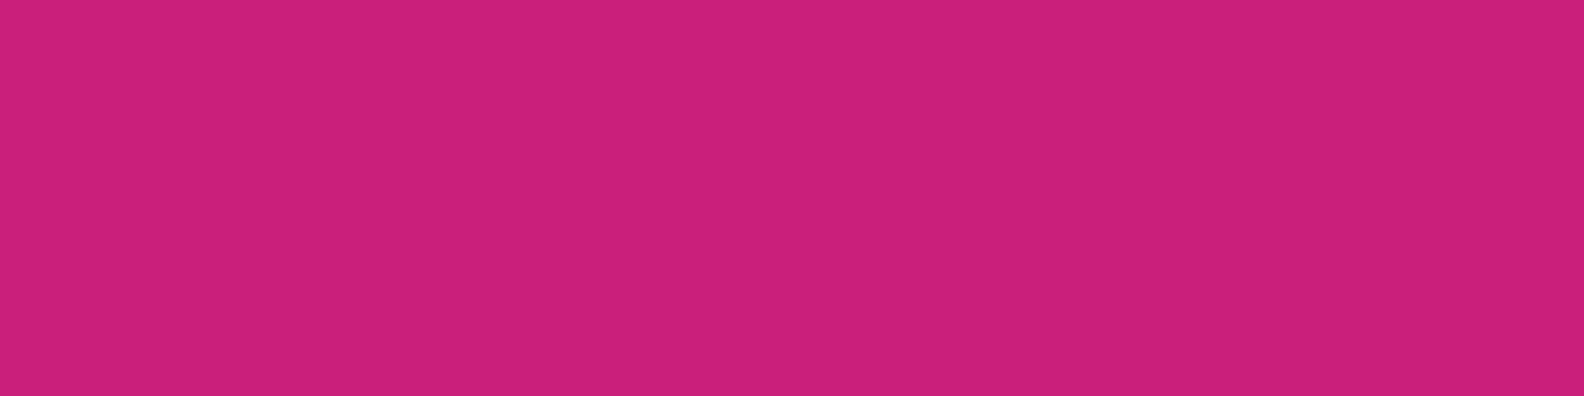 1584x396 Magenta Dye Solid Color Background